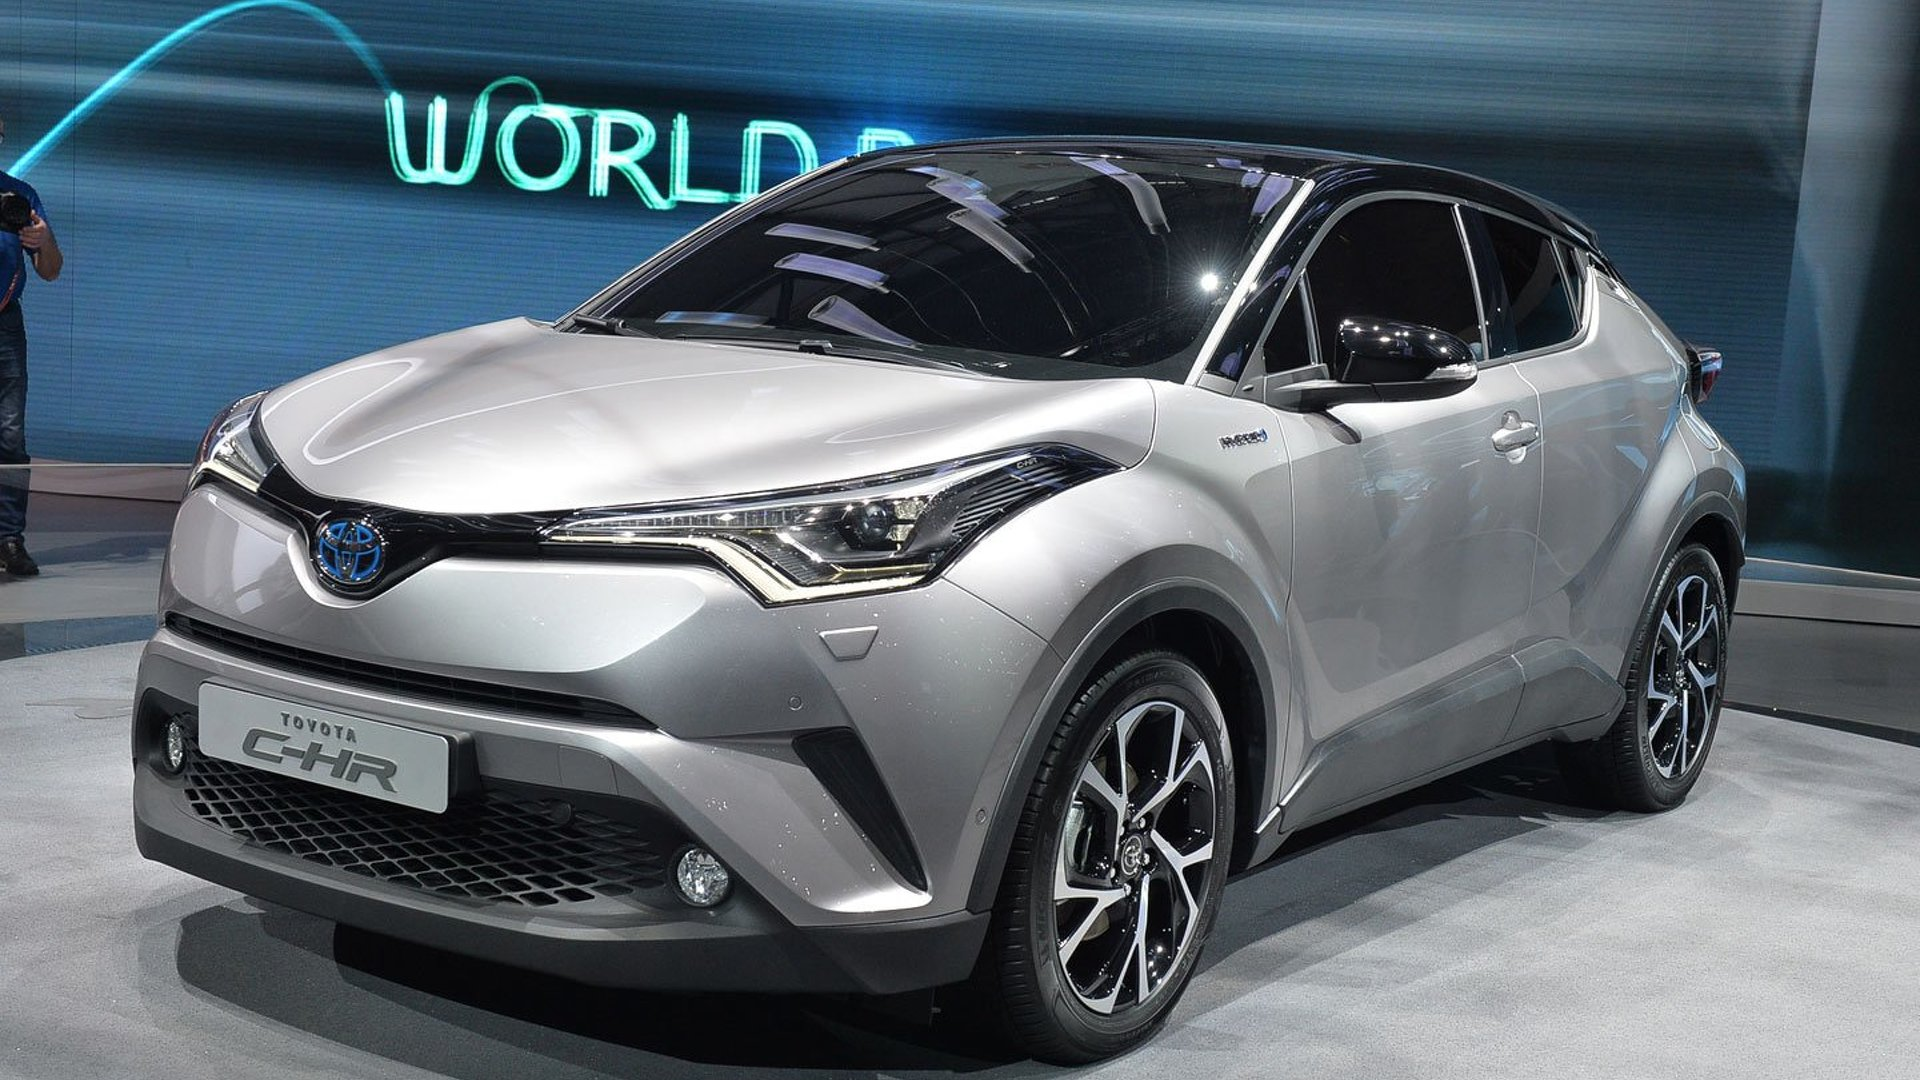 toyota c hr brings first full hybrid to subcompact crossover segment. Black Bedroom Furniture Sets. Home Design Ideas